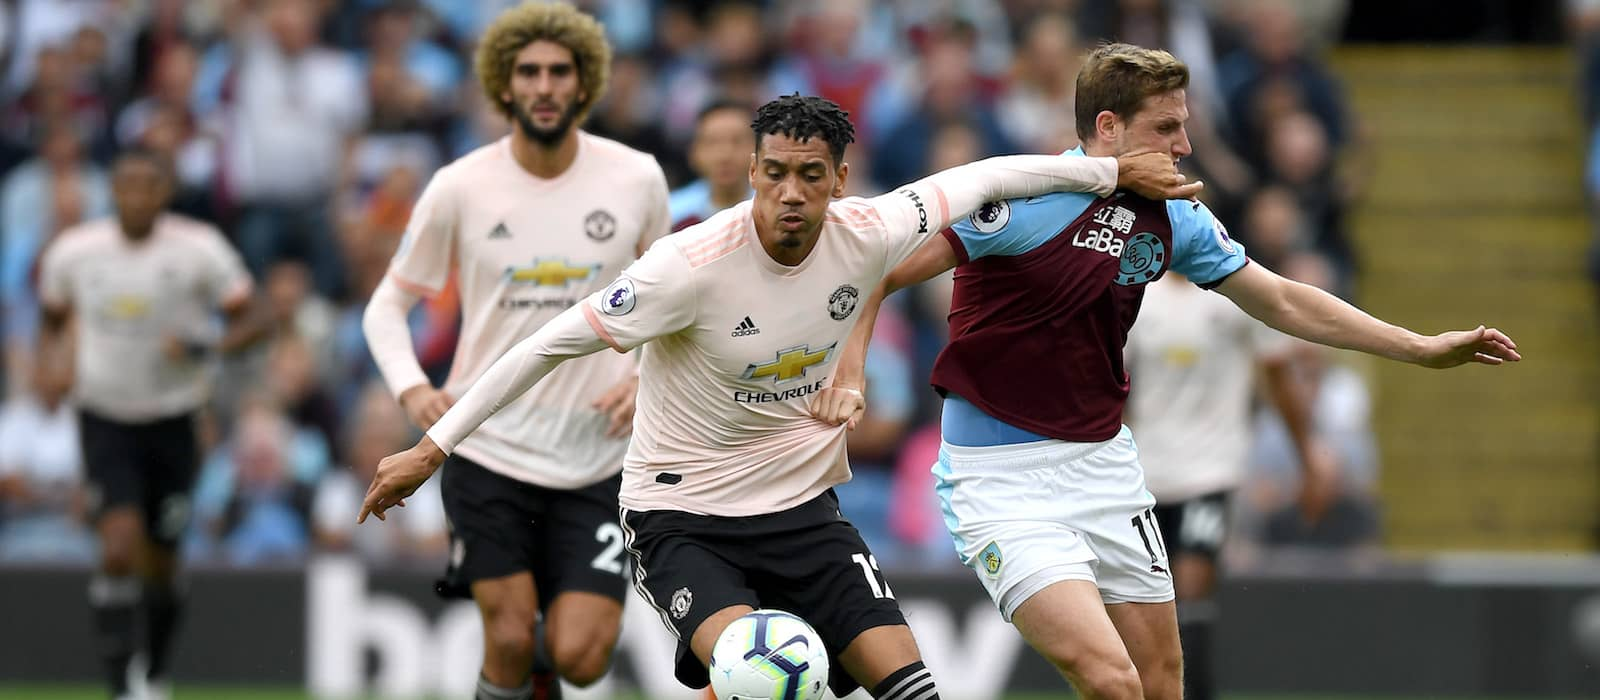 Chris Smalling to return to Manchester United after Roma loan